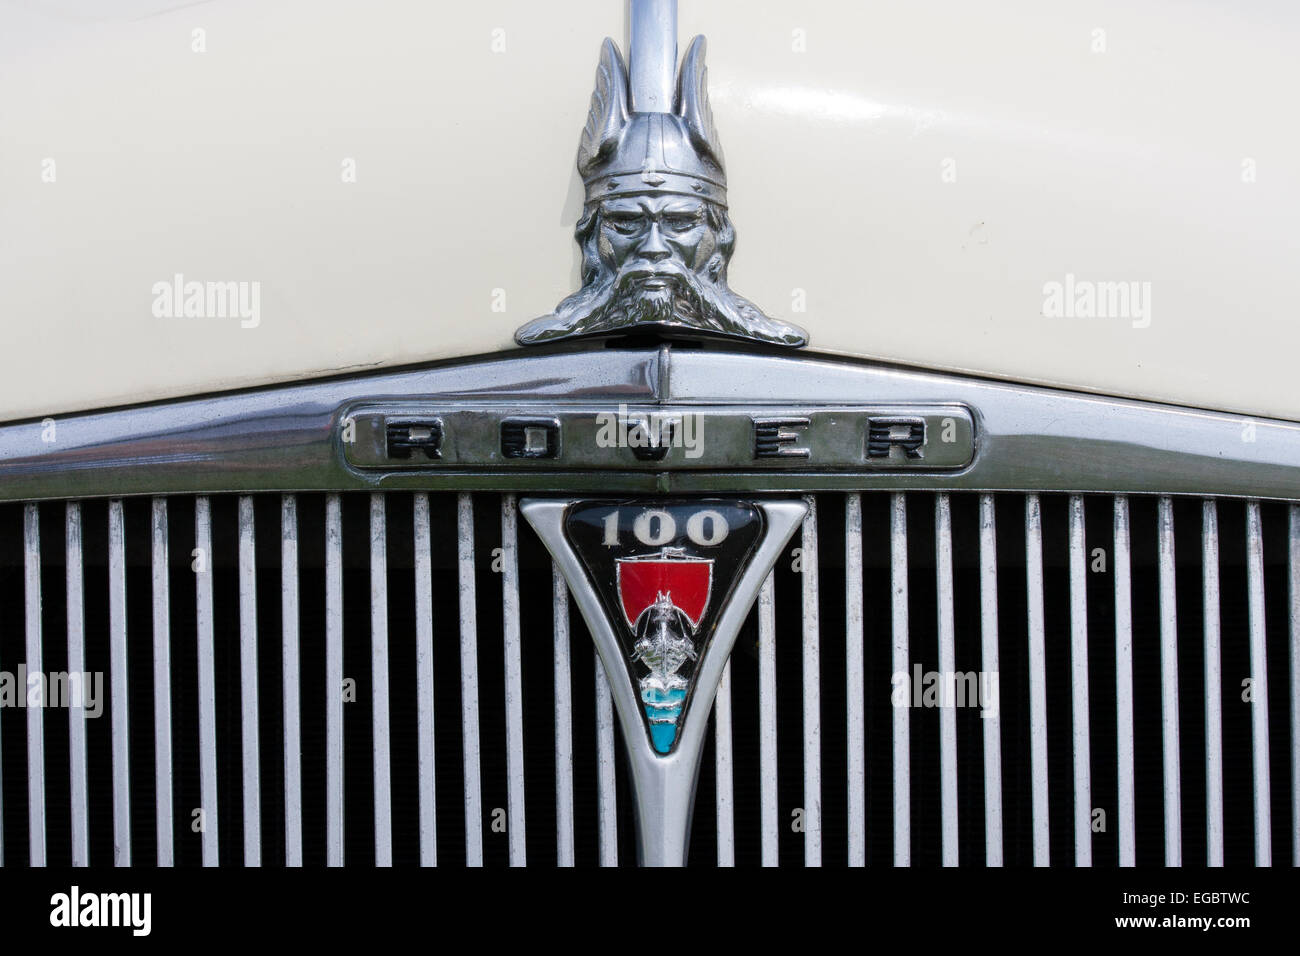 England, Ramsgate. War and Peace show. Rover 100, 1962 vintage car, logo on front - Stock Image